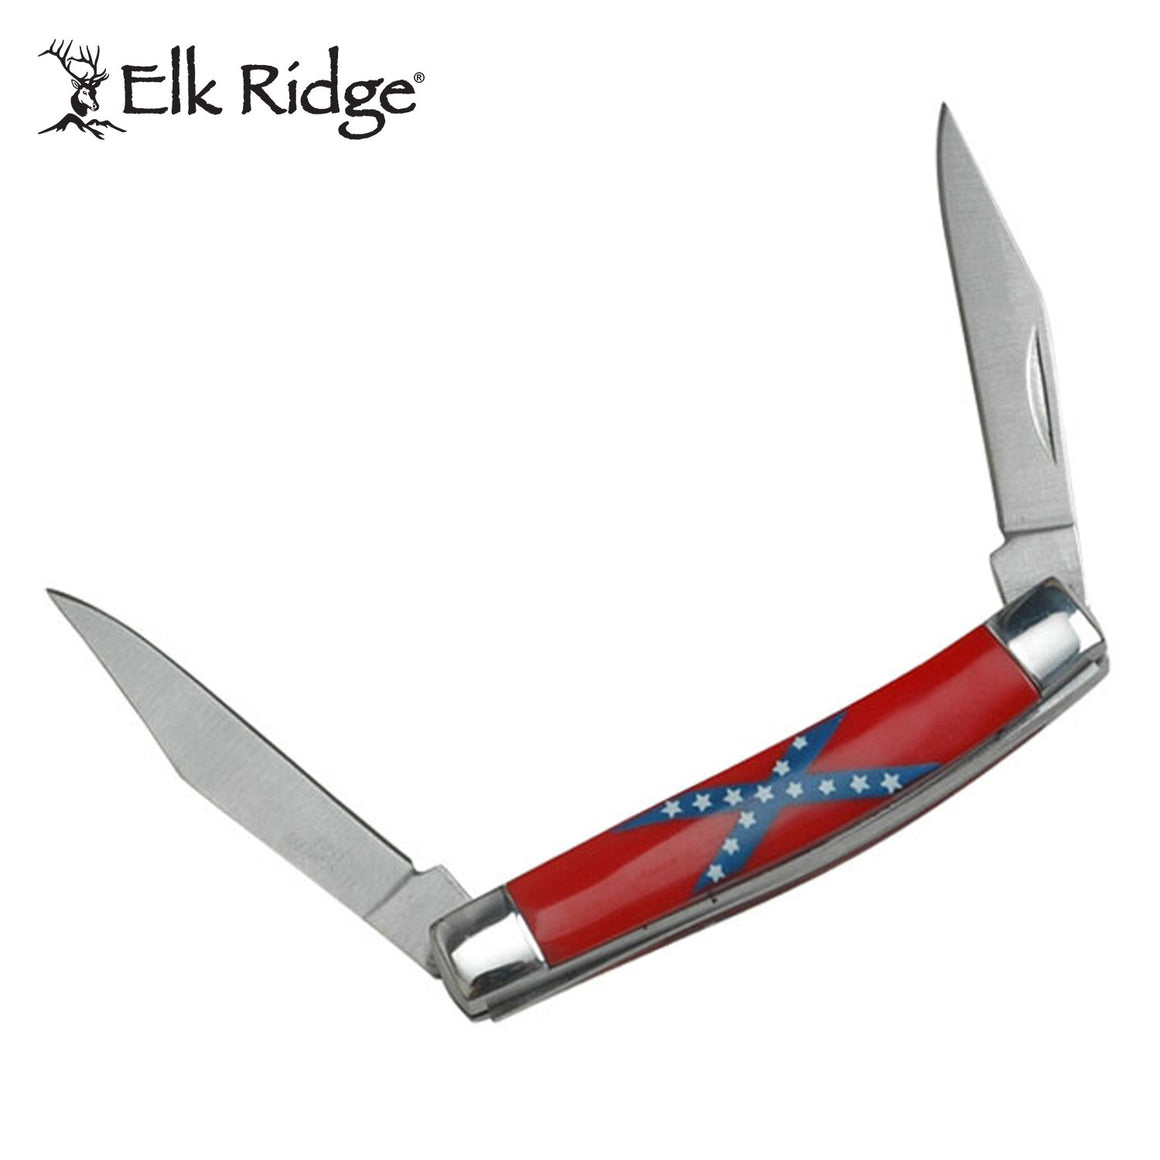 Elk Ridge ER-211CS Gentleman's Knife